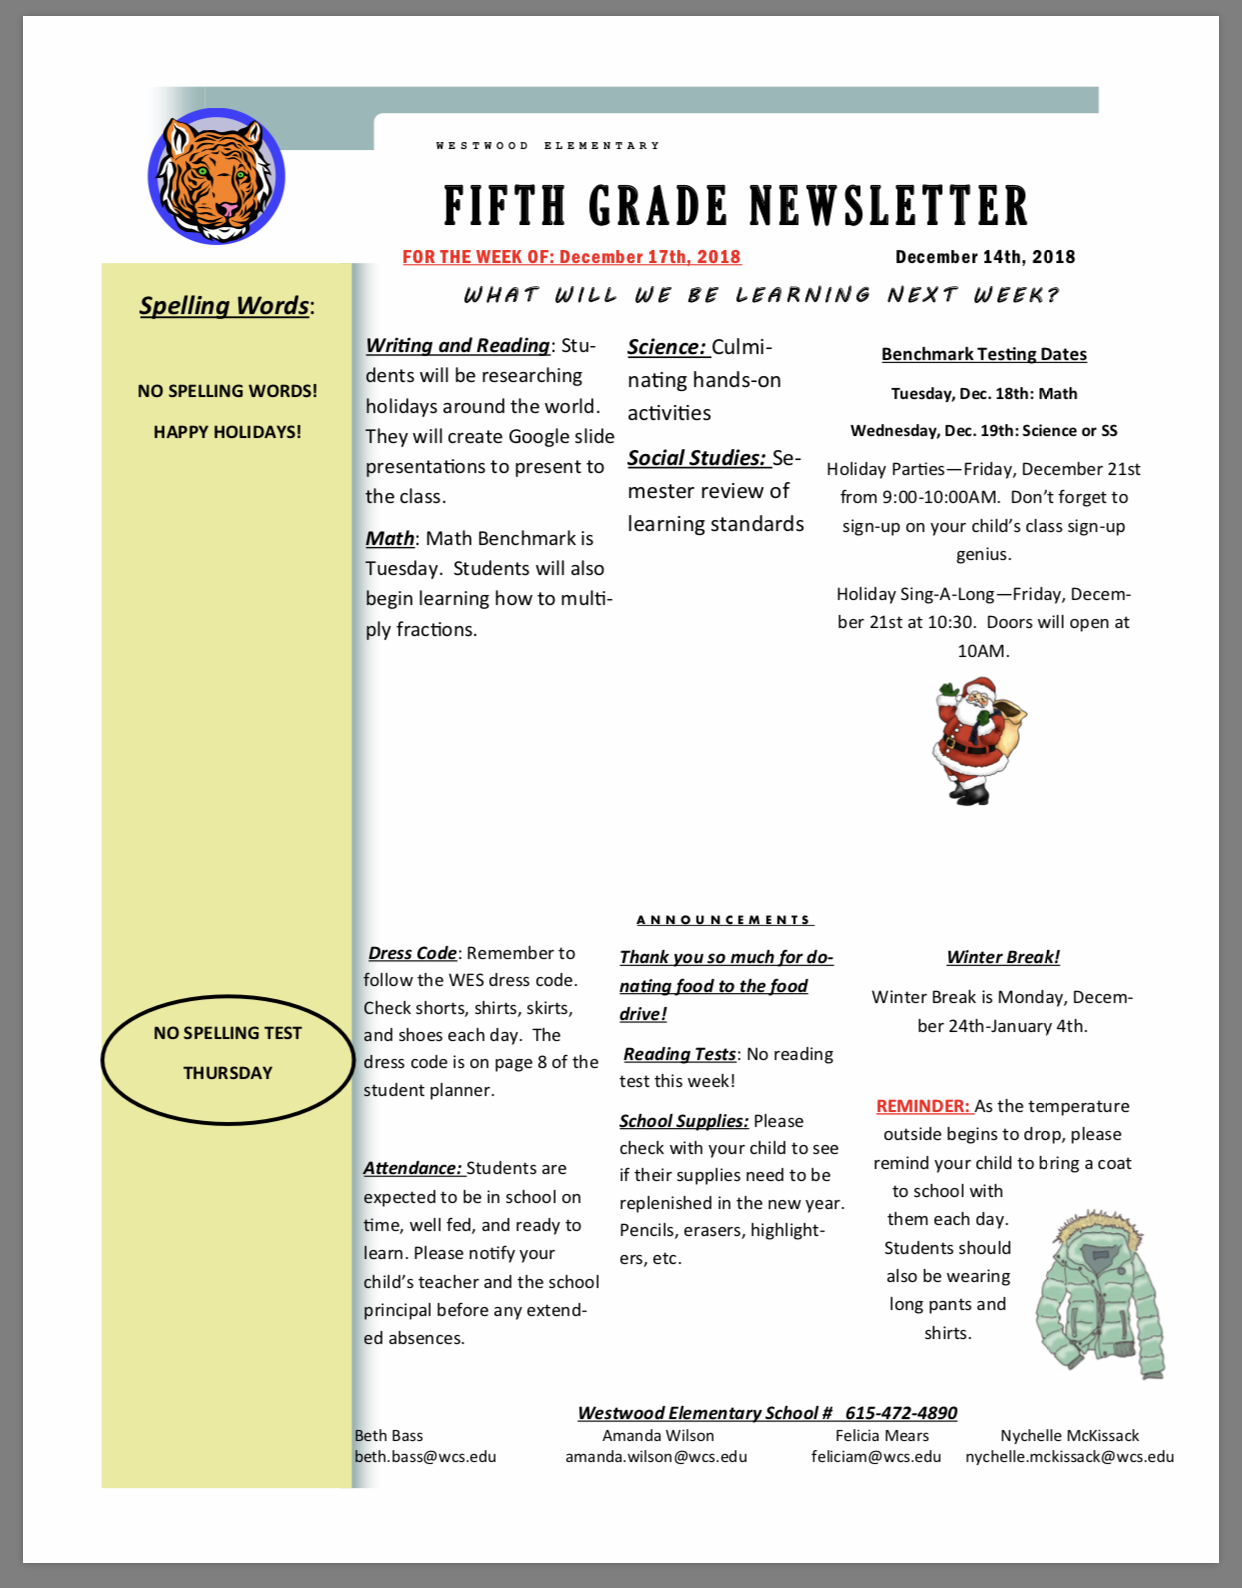 Fifth Grade Newsletter paper copy available in office